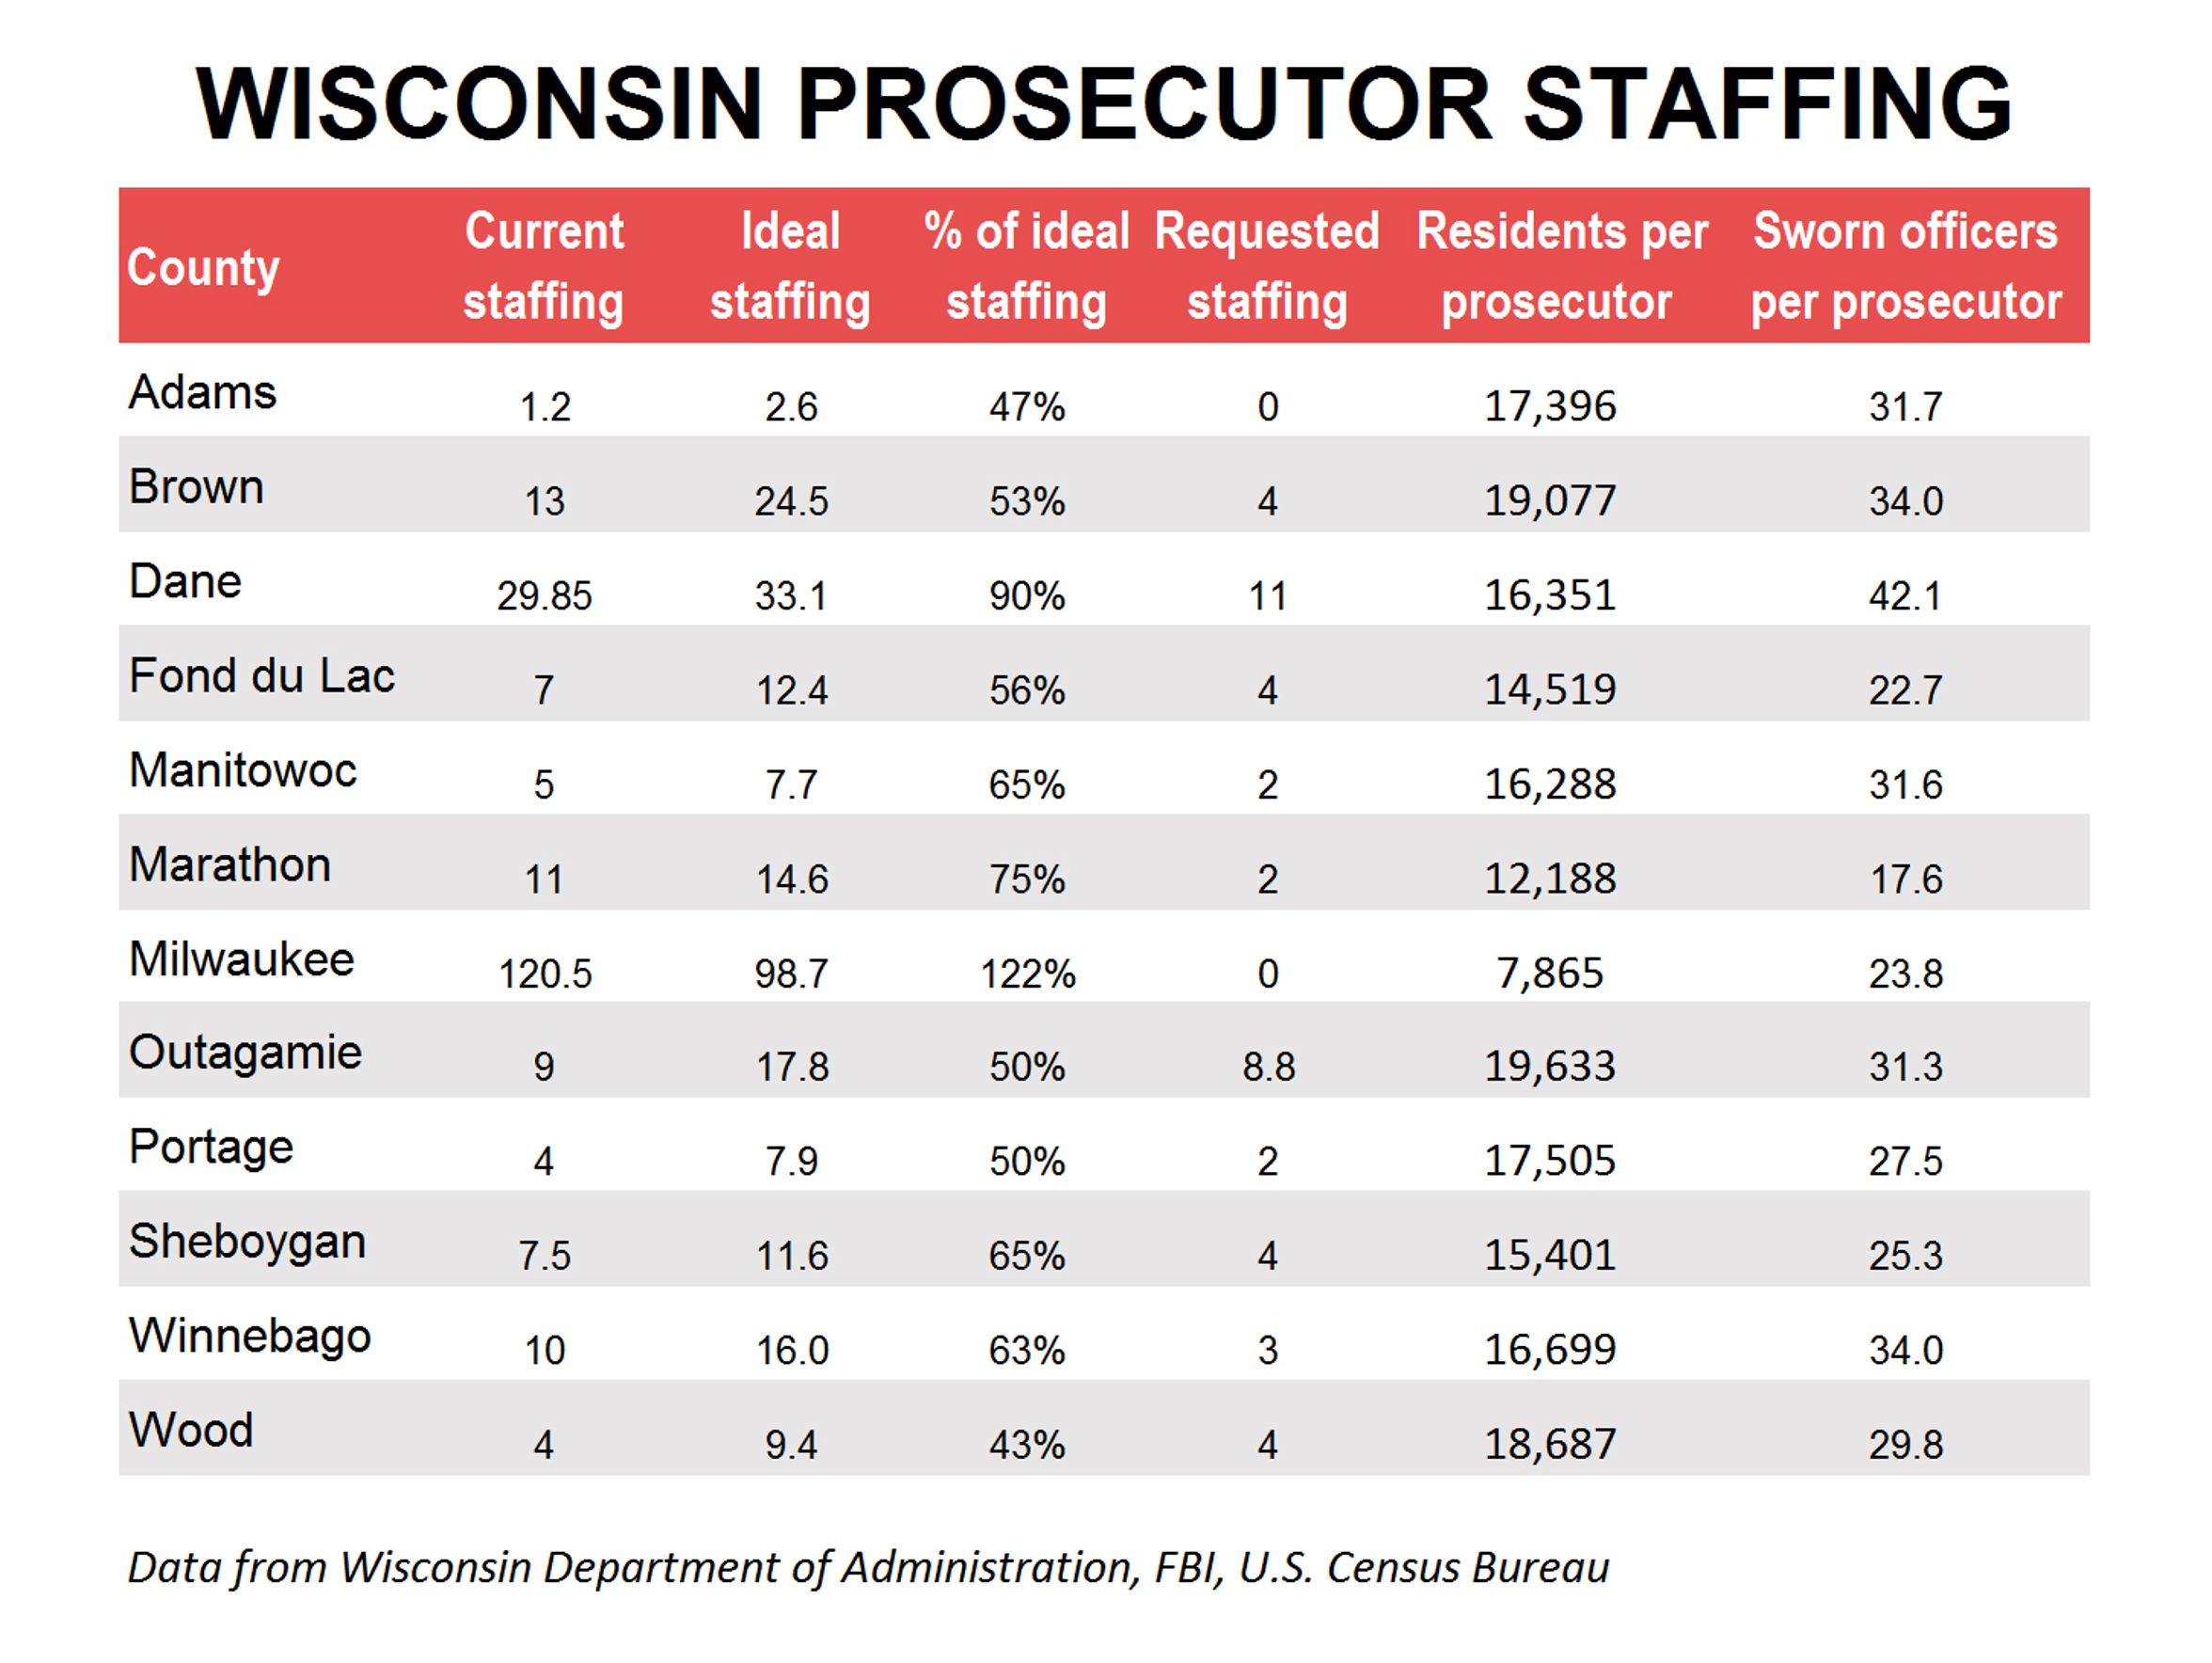 In most cases throughout Wisconsin counties, the number